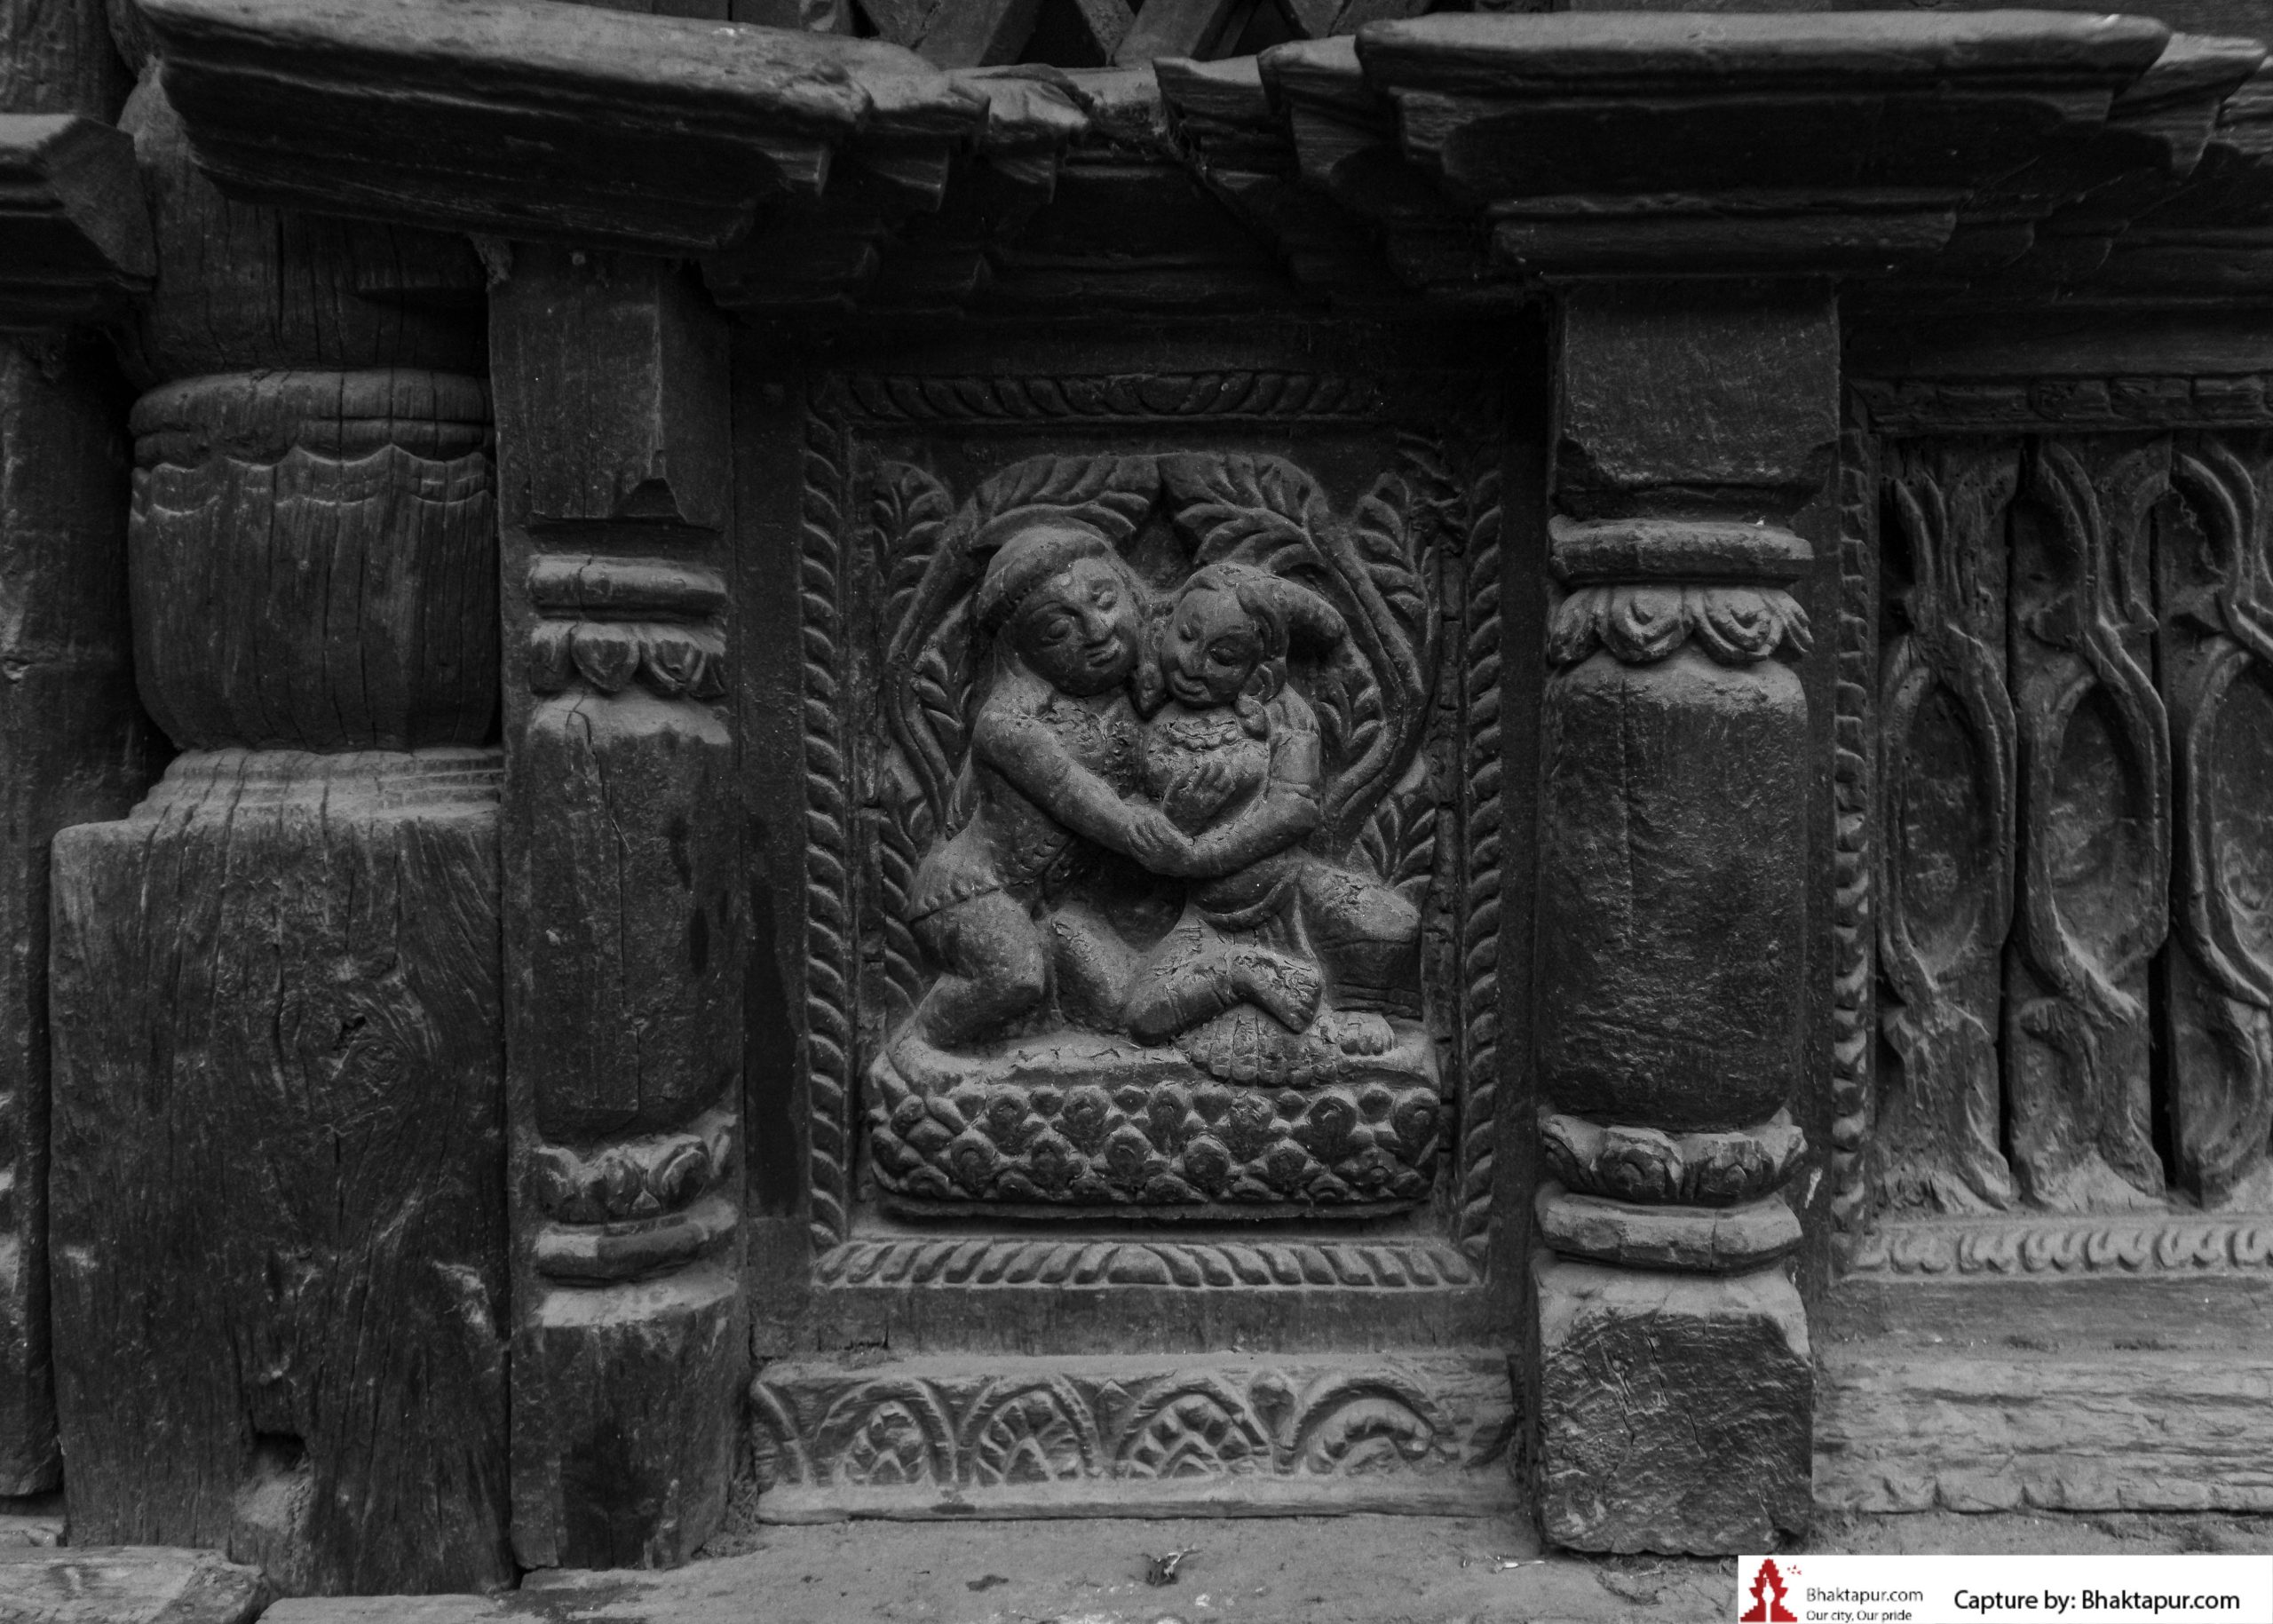 https://www.bhaktapur.com/wp-content/uploads/2021/08/erotic-carving-5-of-137-scaled.jpg